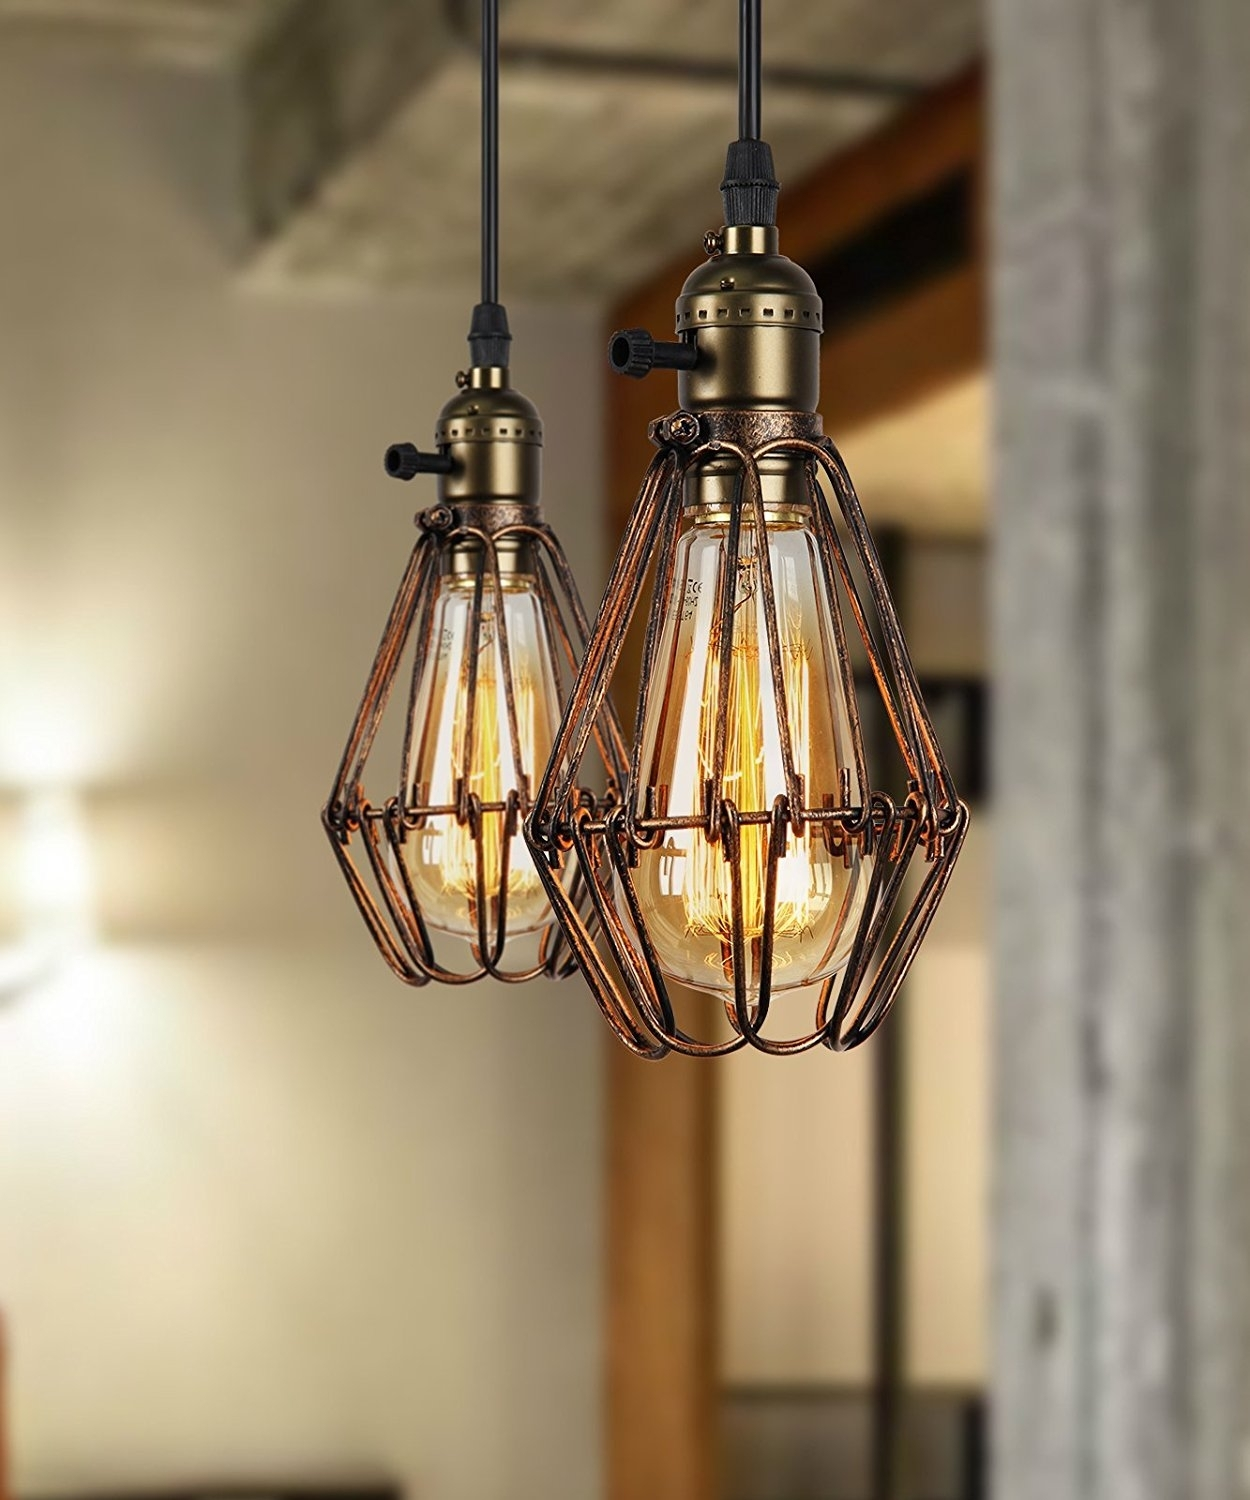 Inspiration about Very Characteristic Of Rustic Pendant Lighting | Jukem Home Design Pertaining To Vintage Outdoor Hanging Lights (#13 of 15)